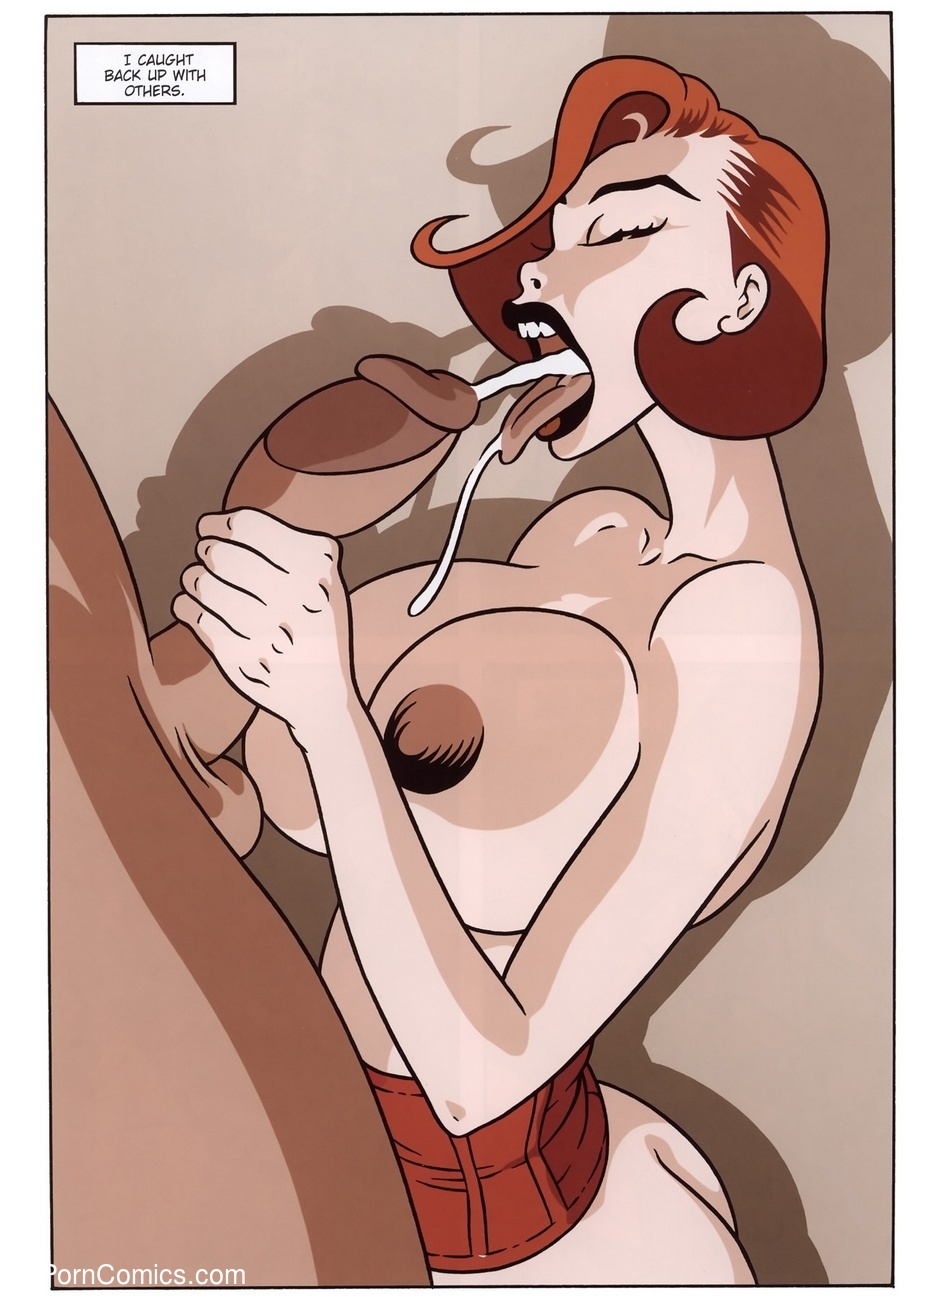 The 110 Blowjobs 15 free sex comic